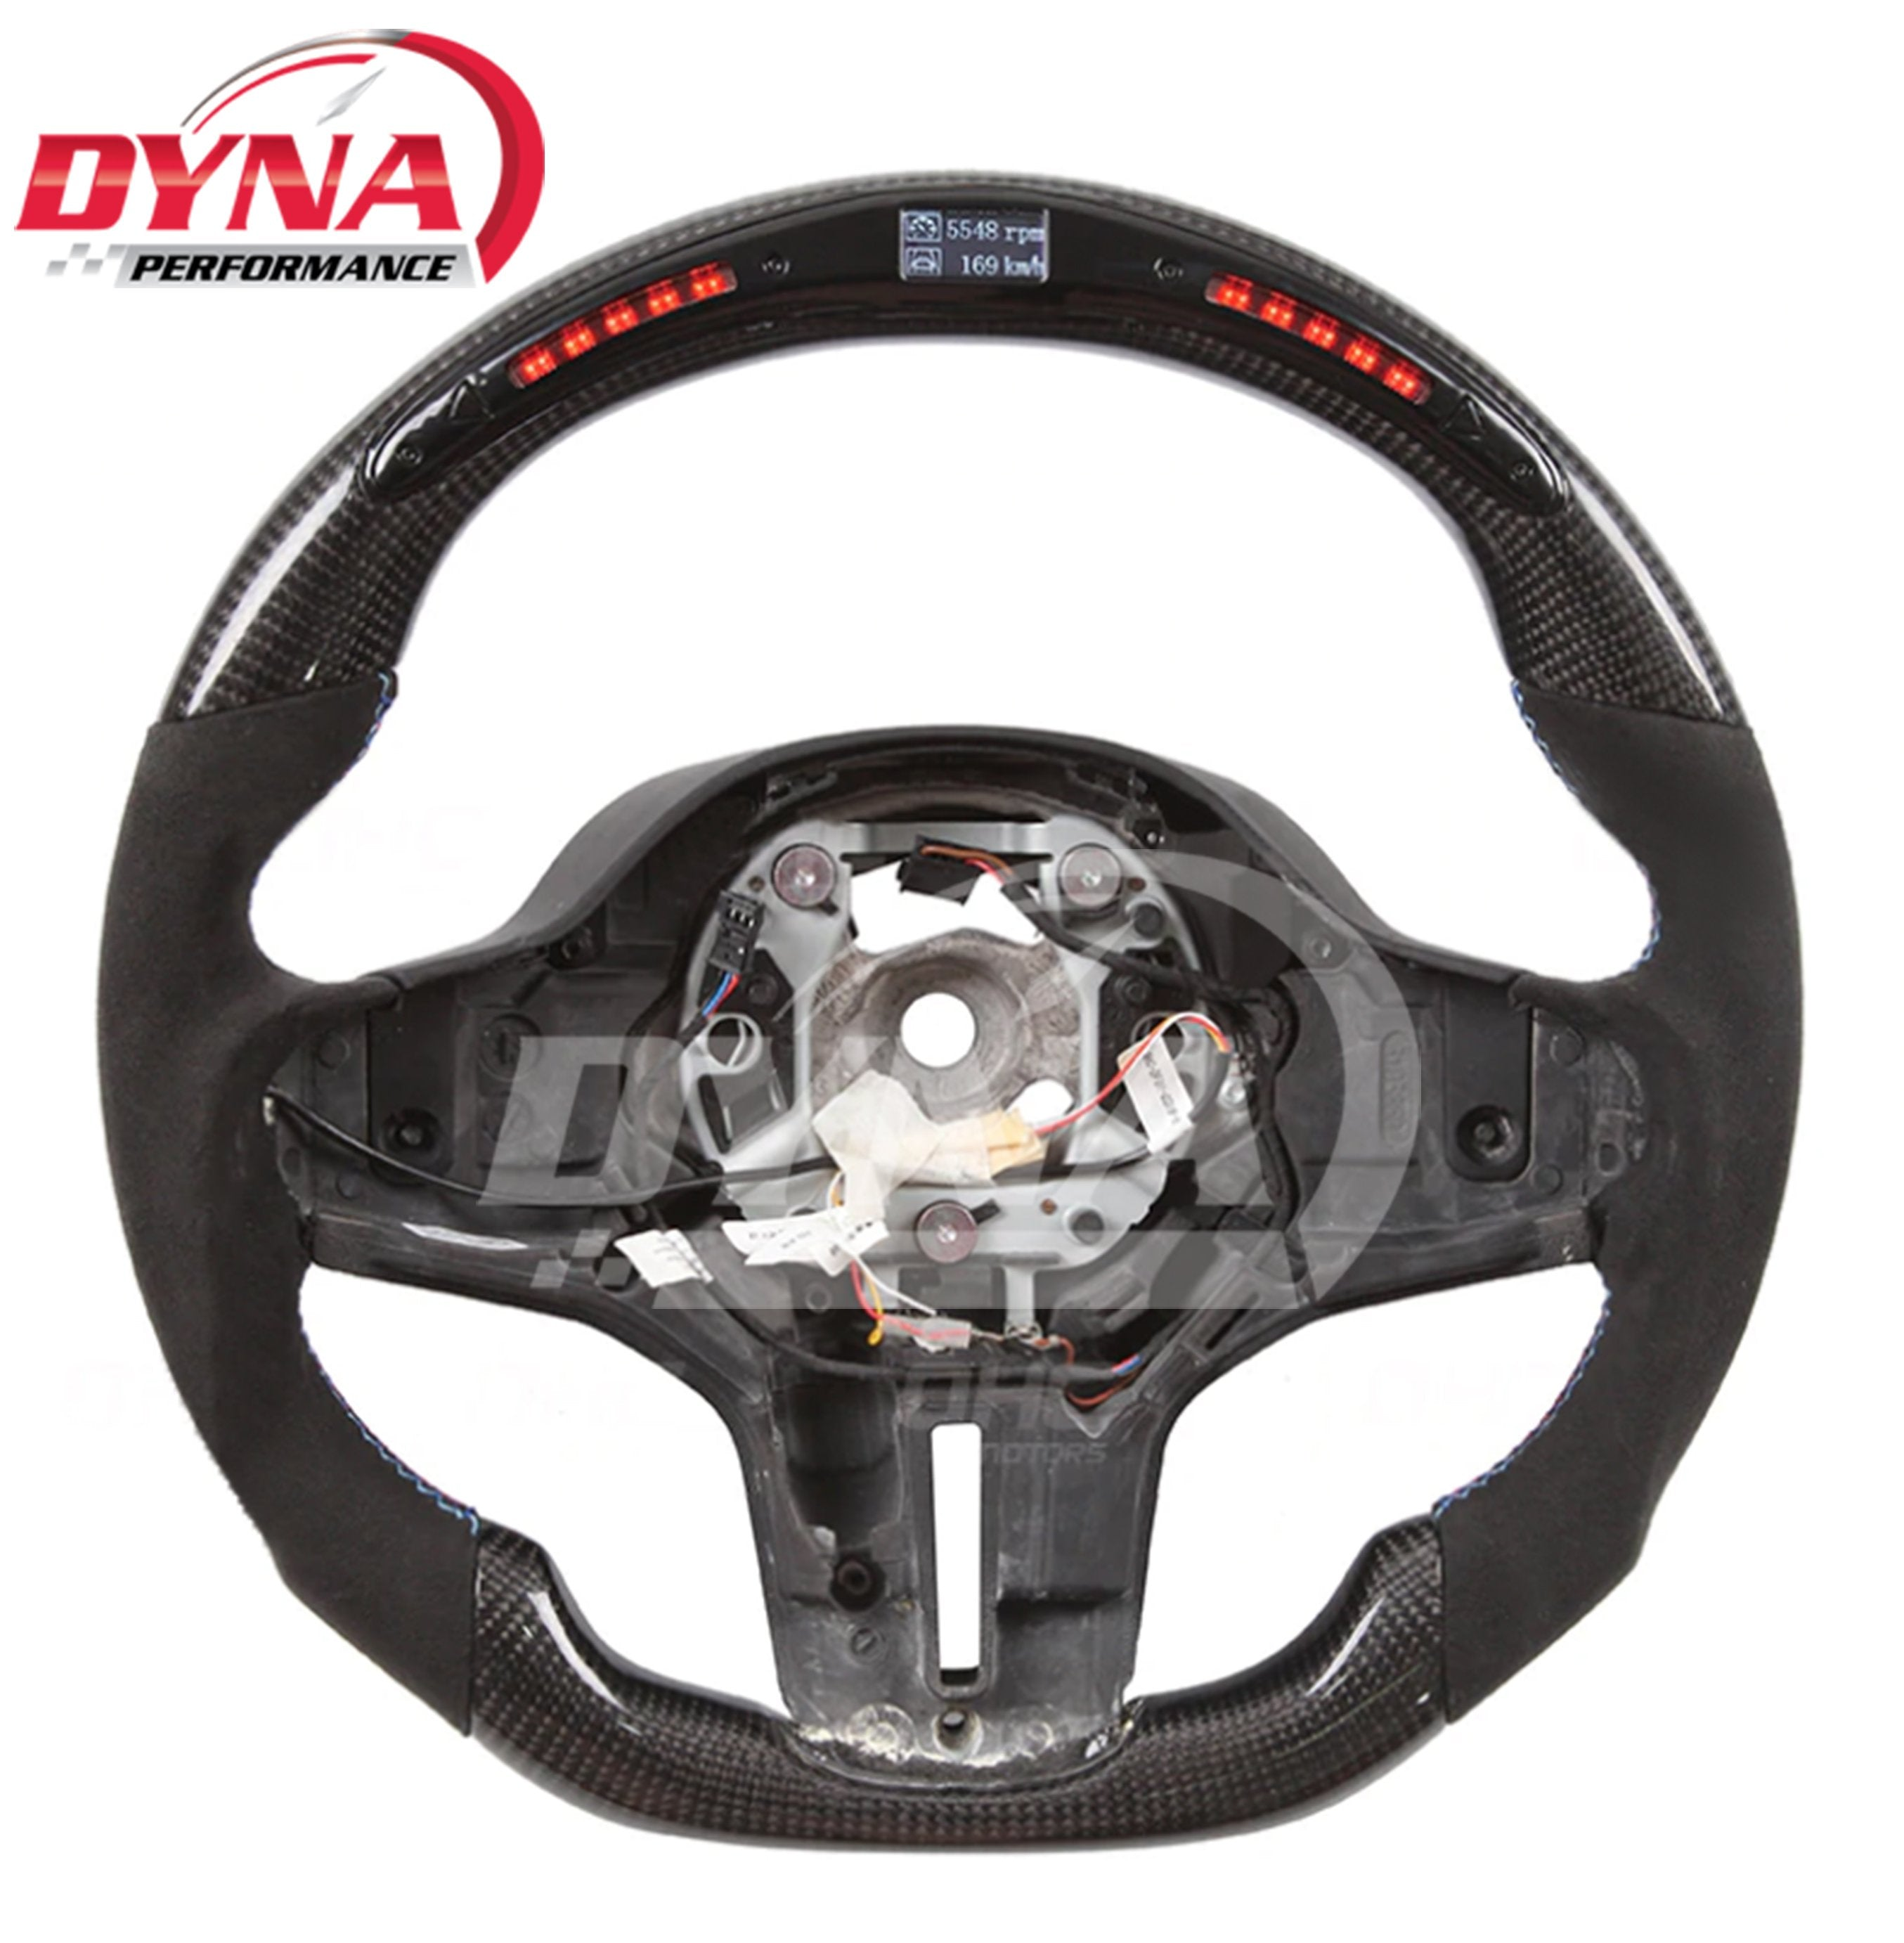 BMW 3 series 2018 - 2020 Steering Wheel